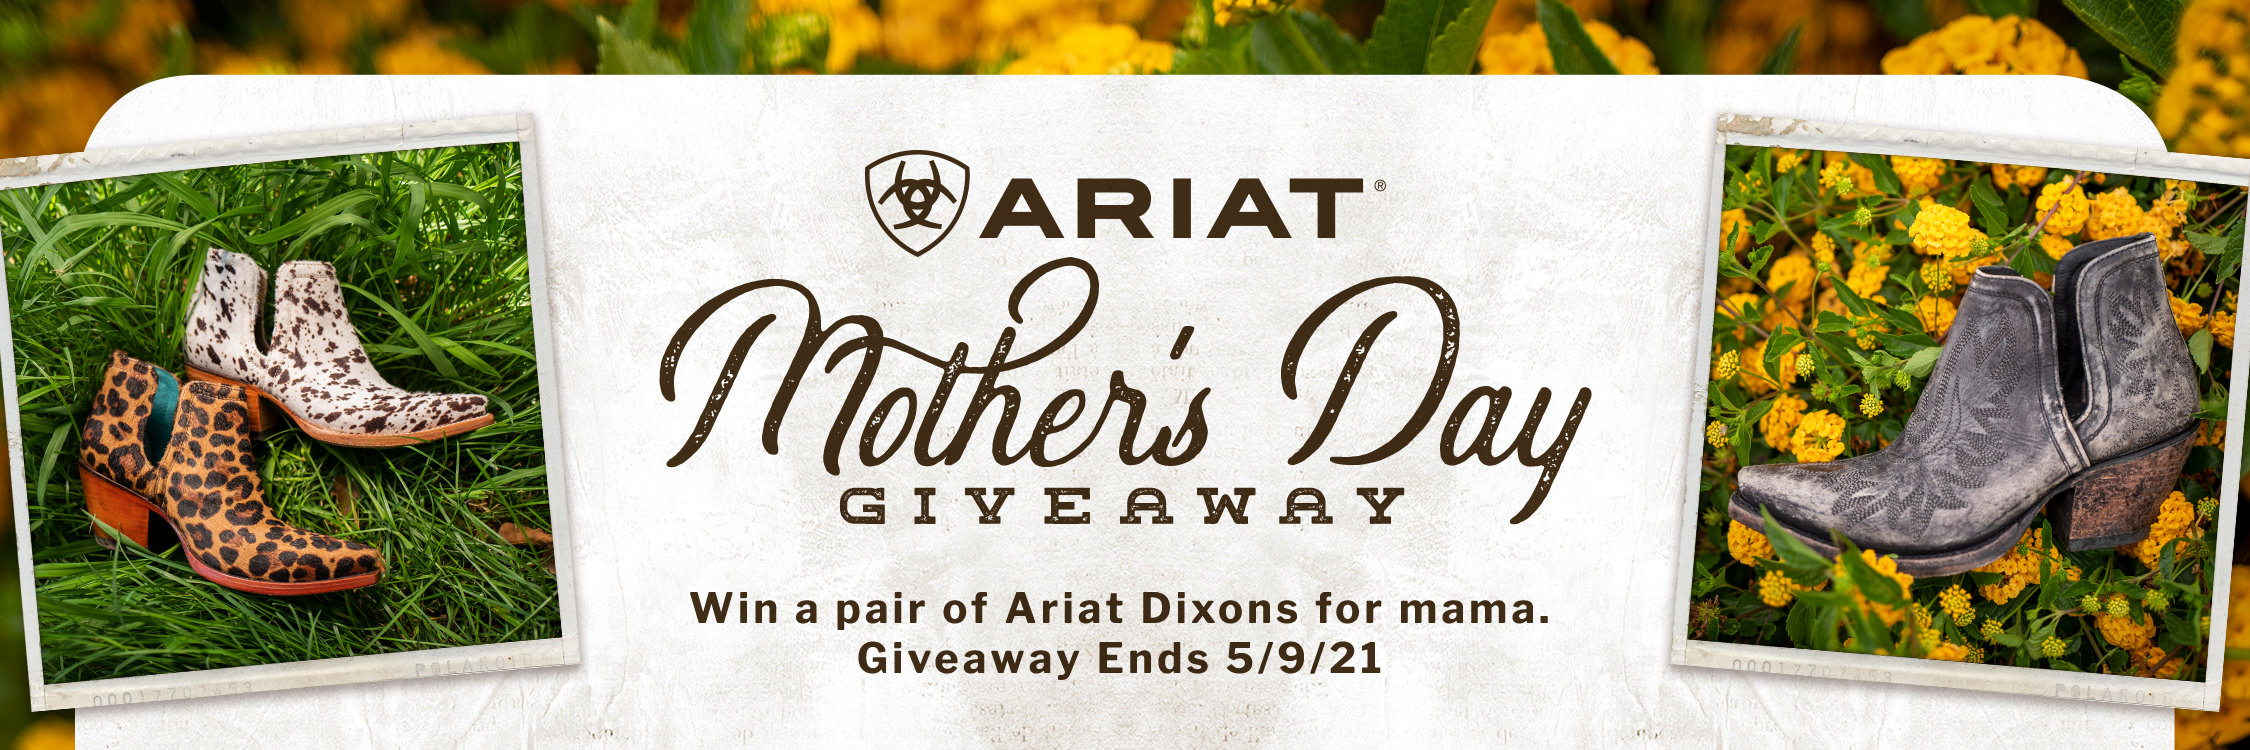 Win a pair of Ariat Dixons for mama.